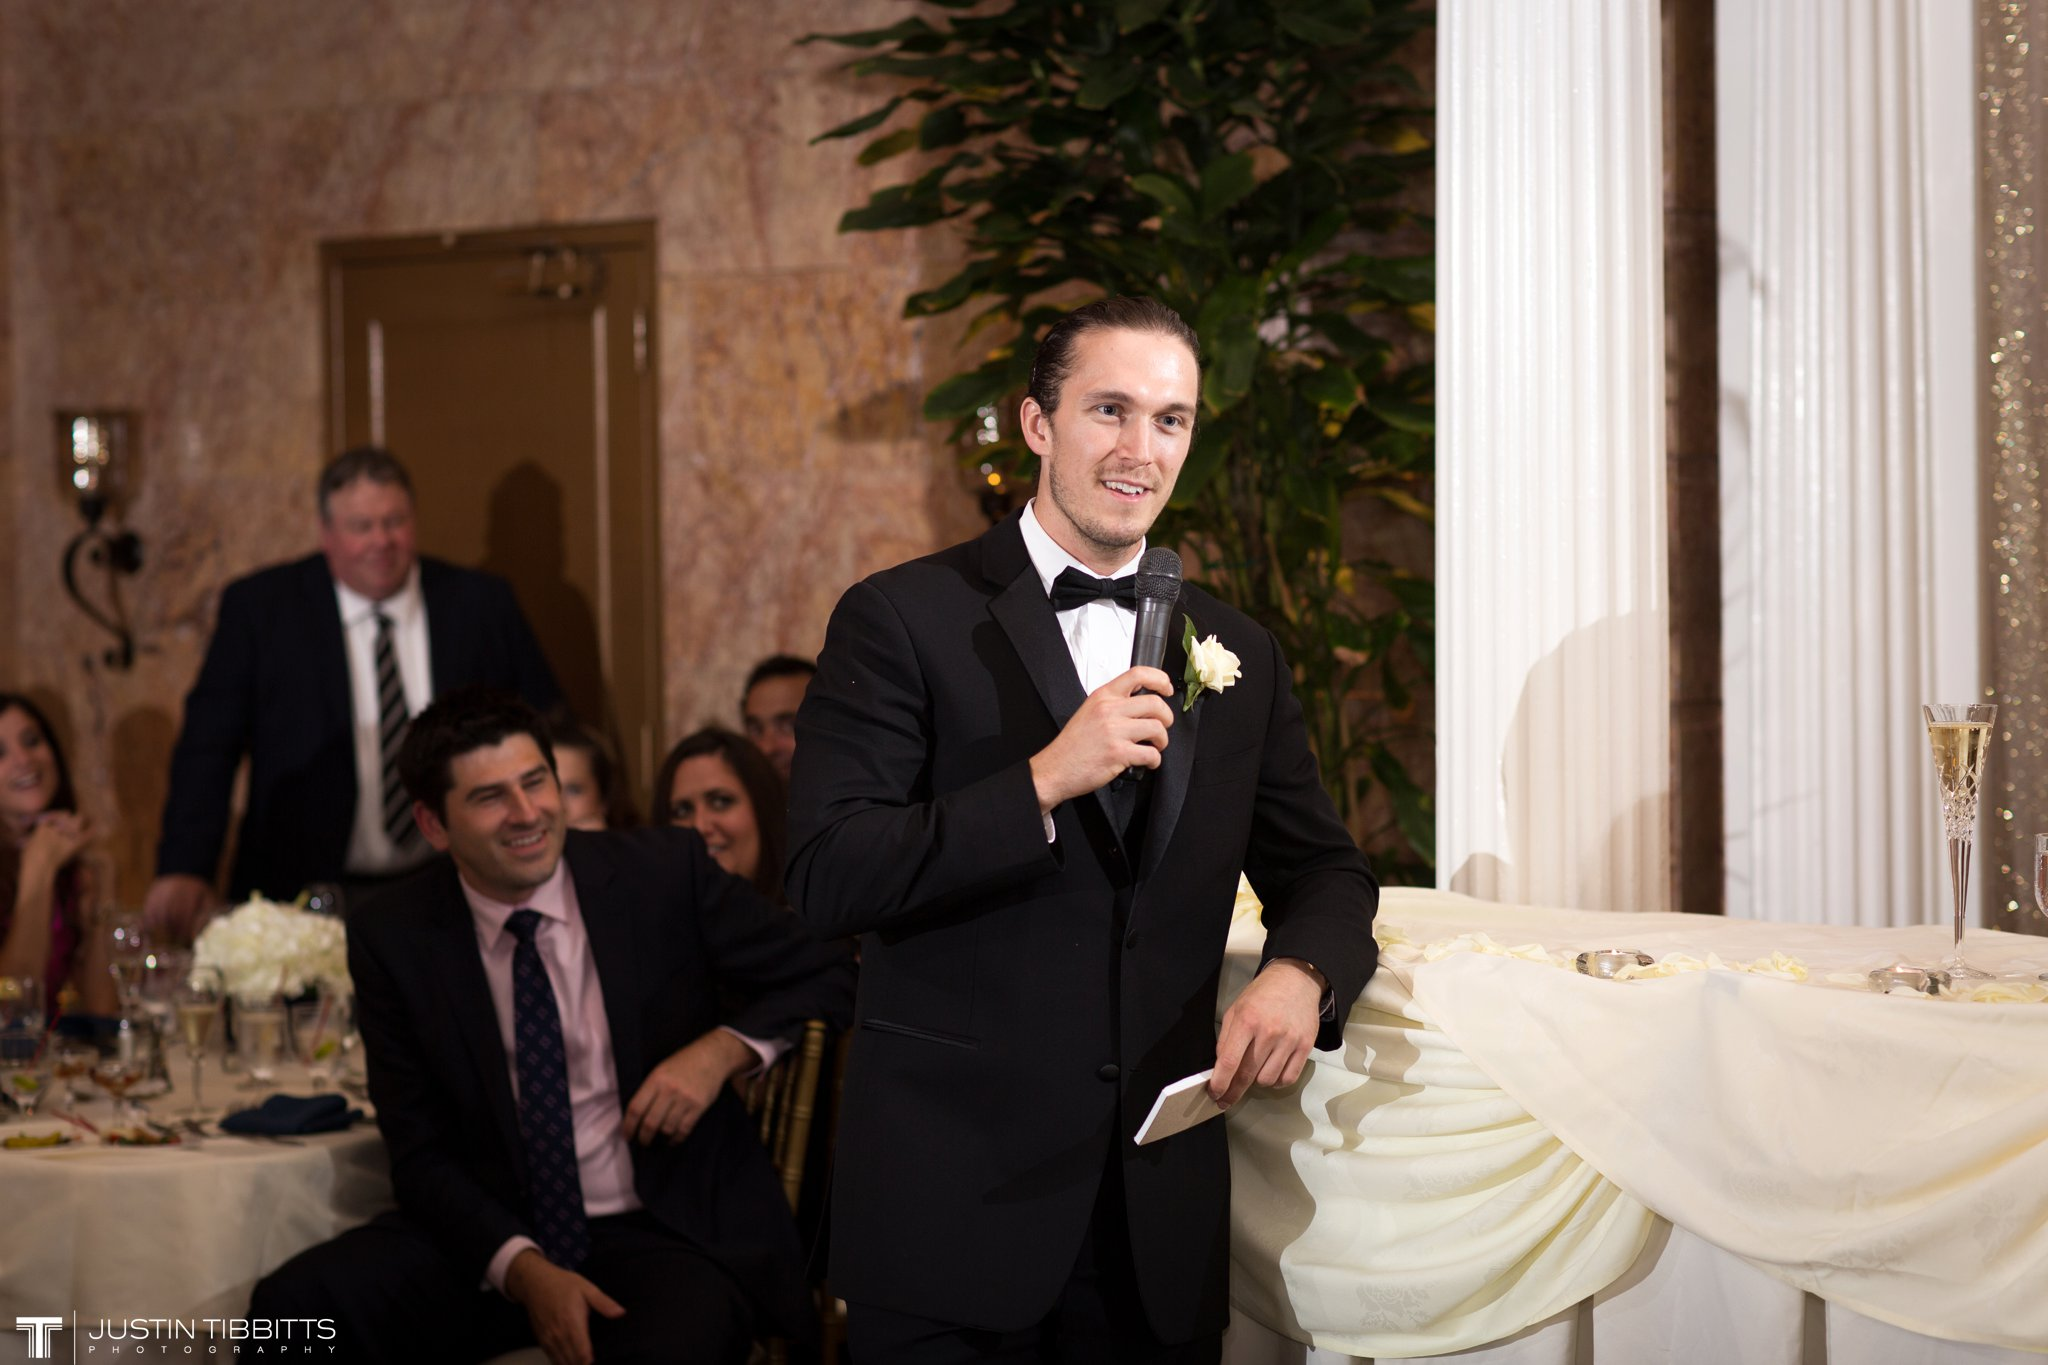 The State Room Albany, NY Wedding with Christian and Meg by Justin Tibbitts Photography_0150